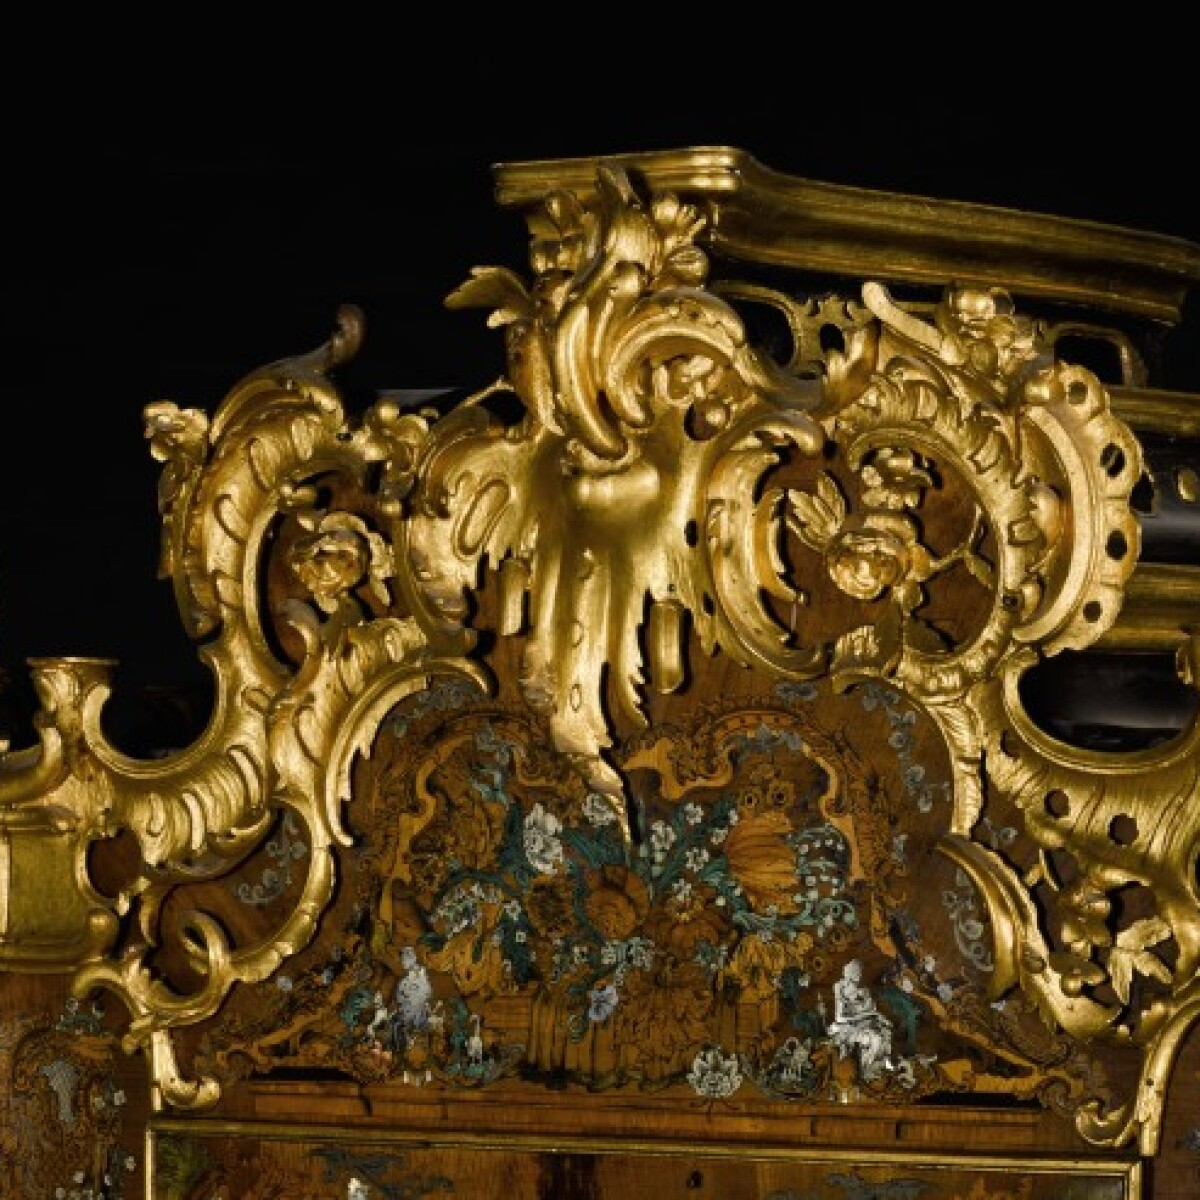 How To Sell Your Antique Furniture With Sotheby S Sotheby S